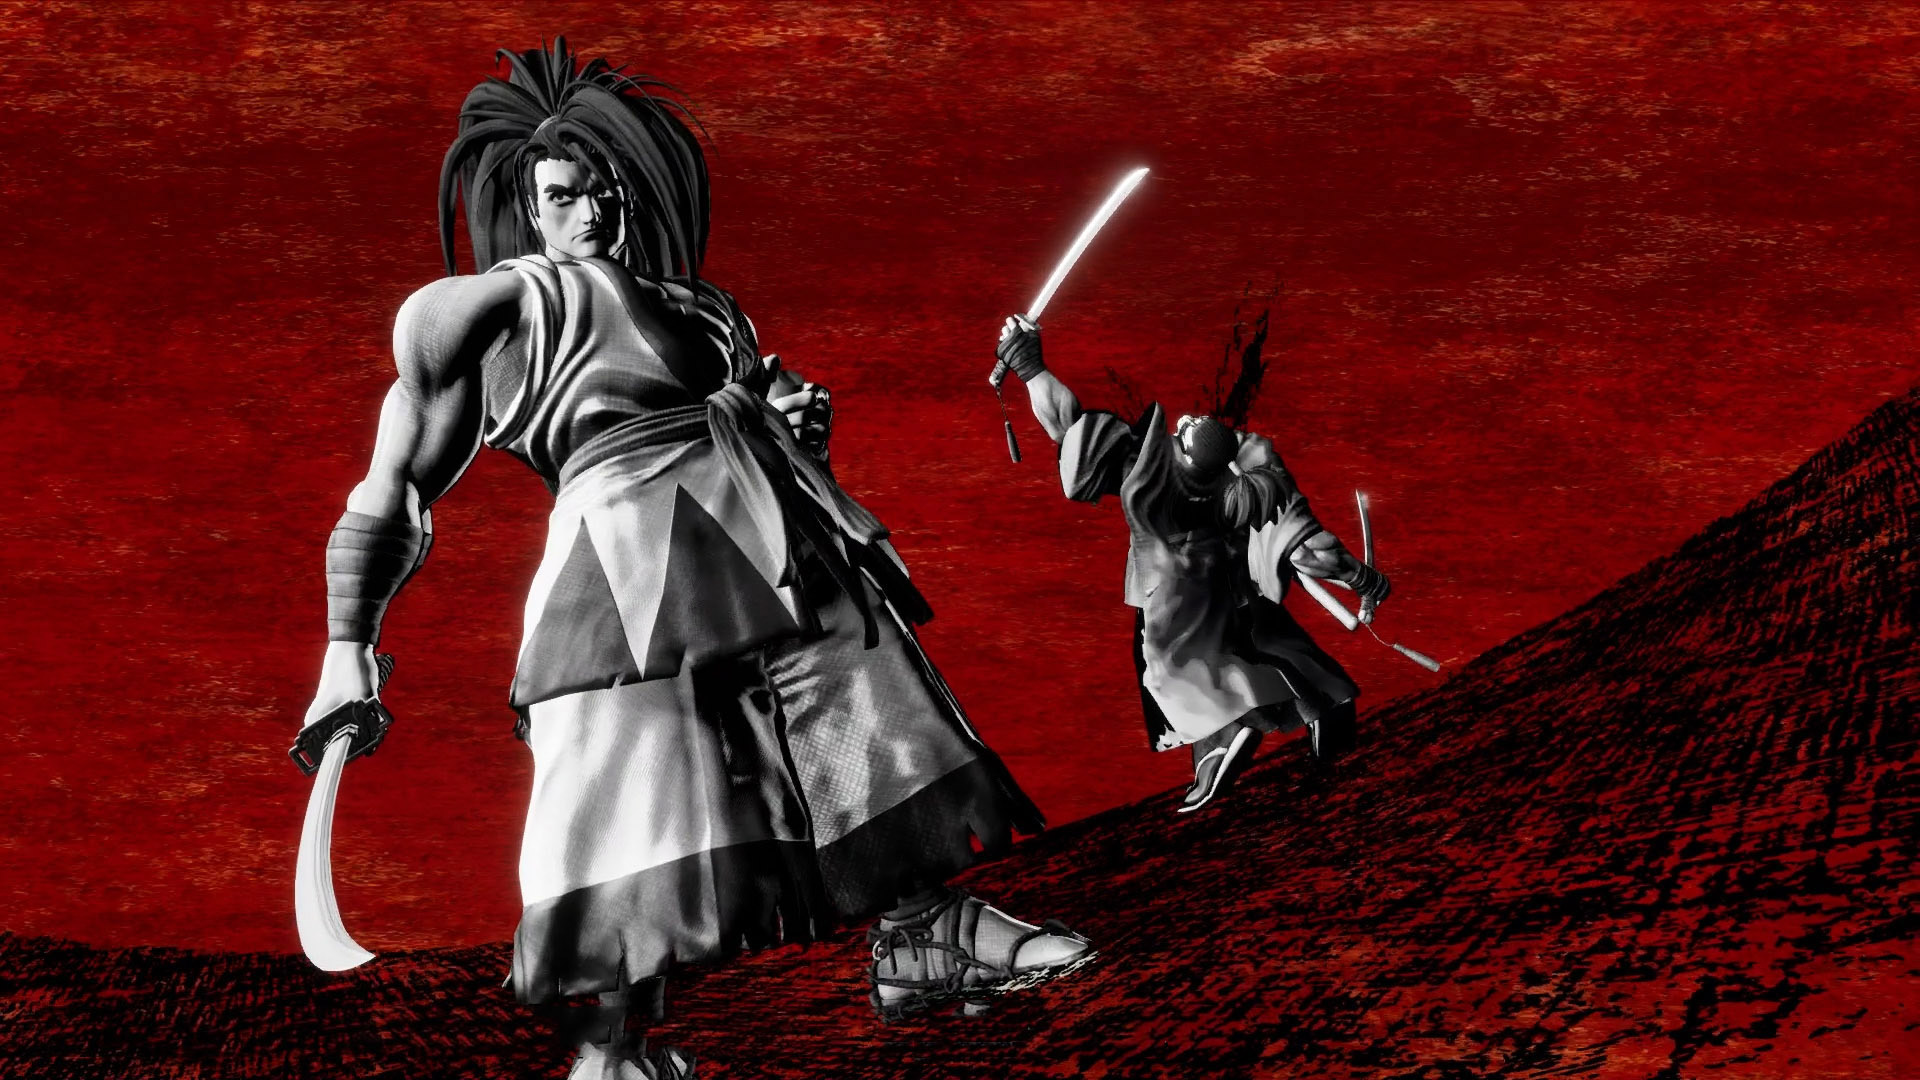 Free Samurai Shodown (2019) Wallpaper in 1920x1080